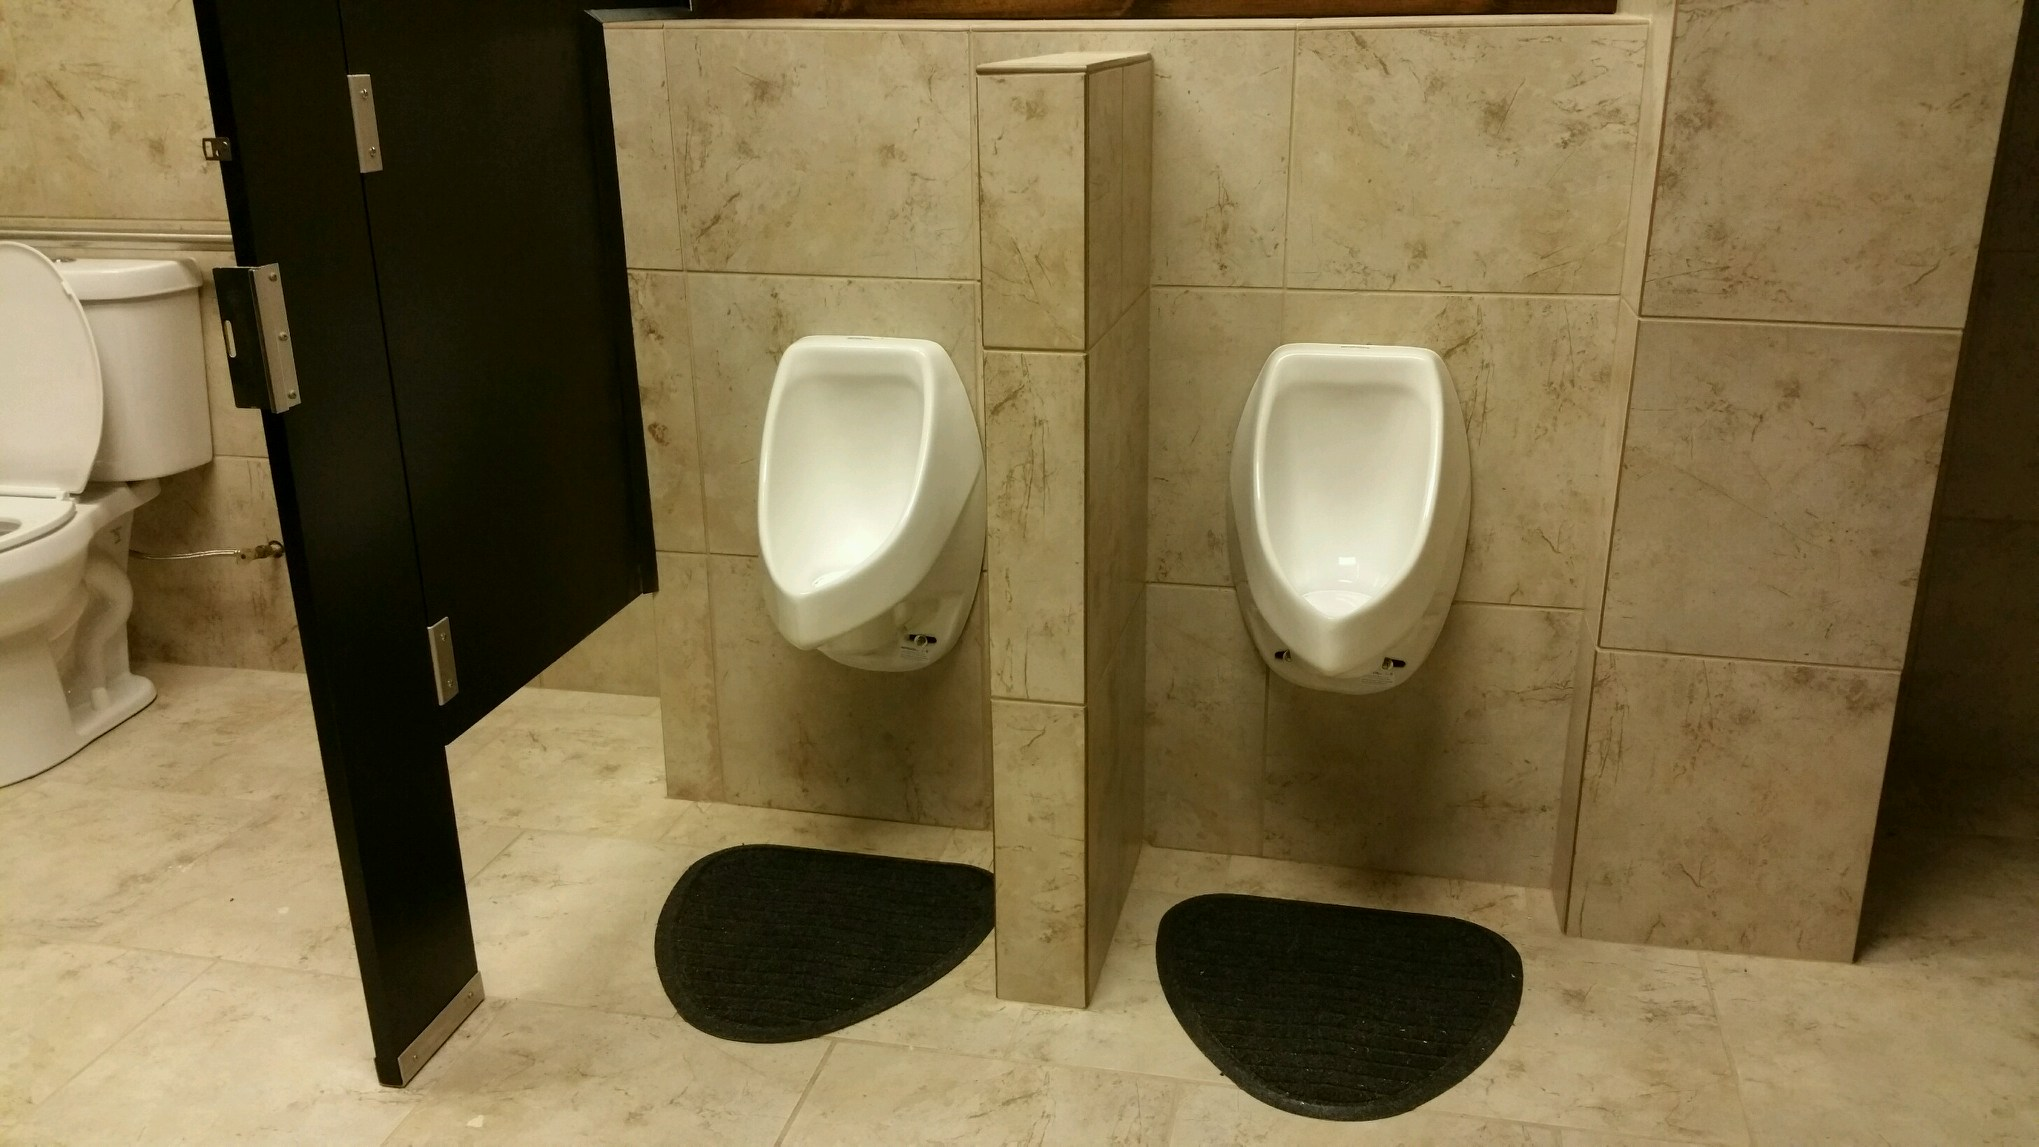 waterless urinals to reduce water consumption